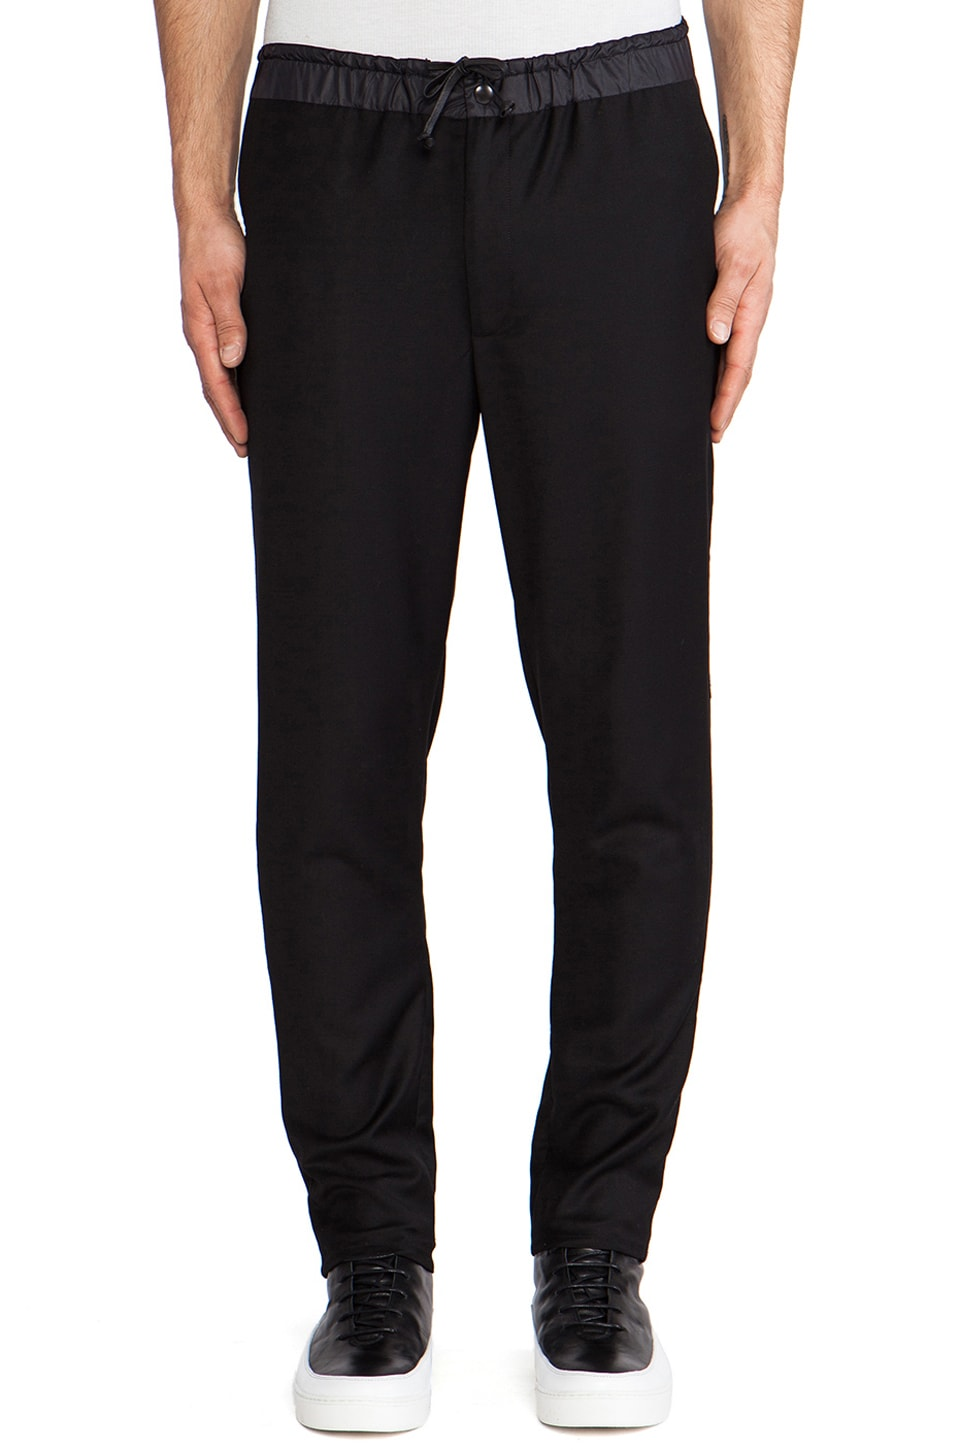 Public School Elasticated Waist Pants in Black